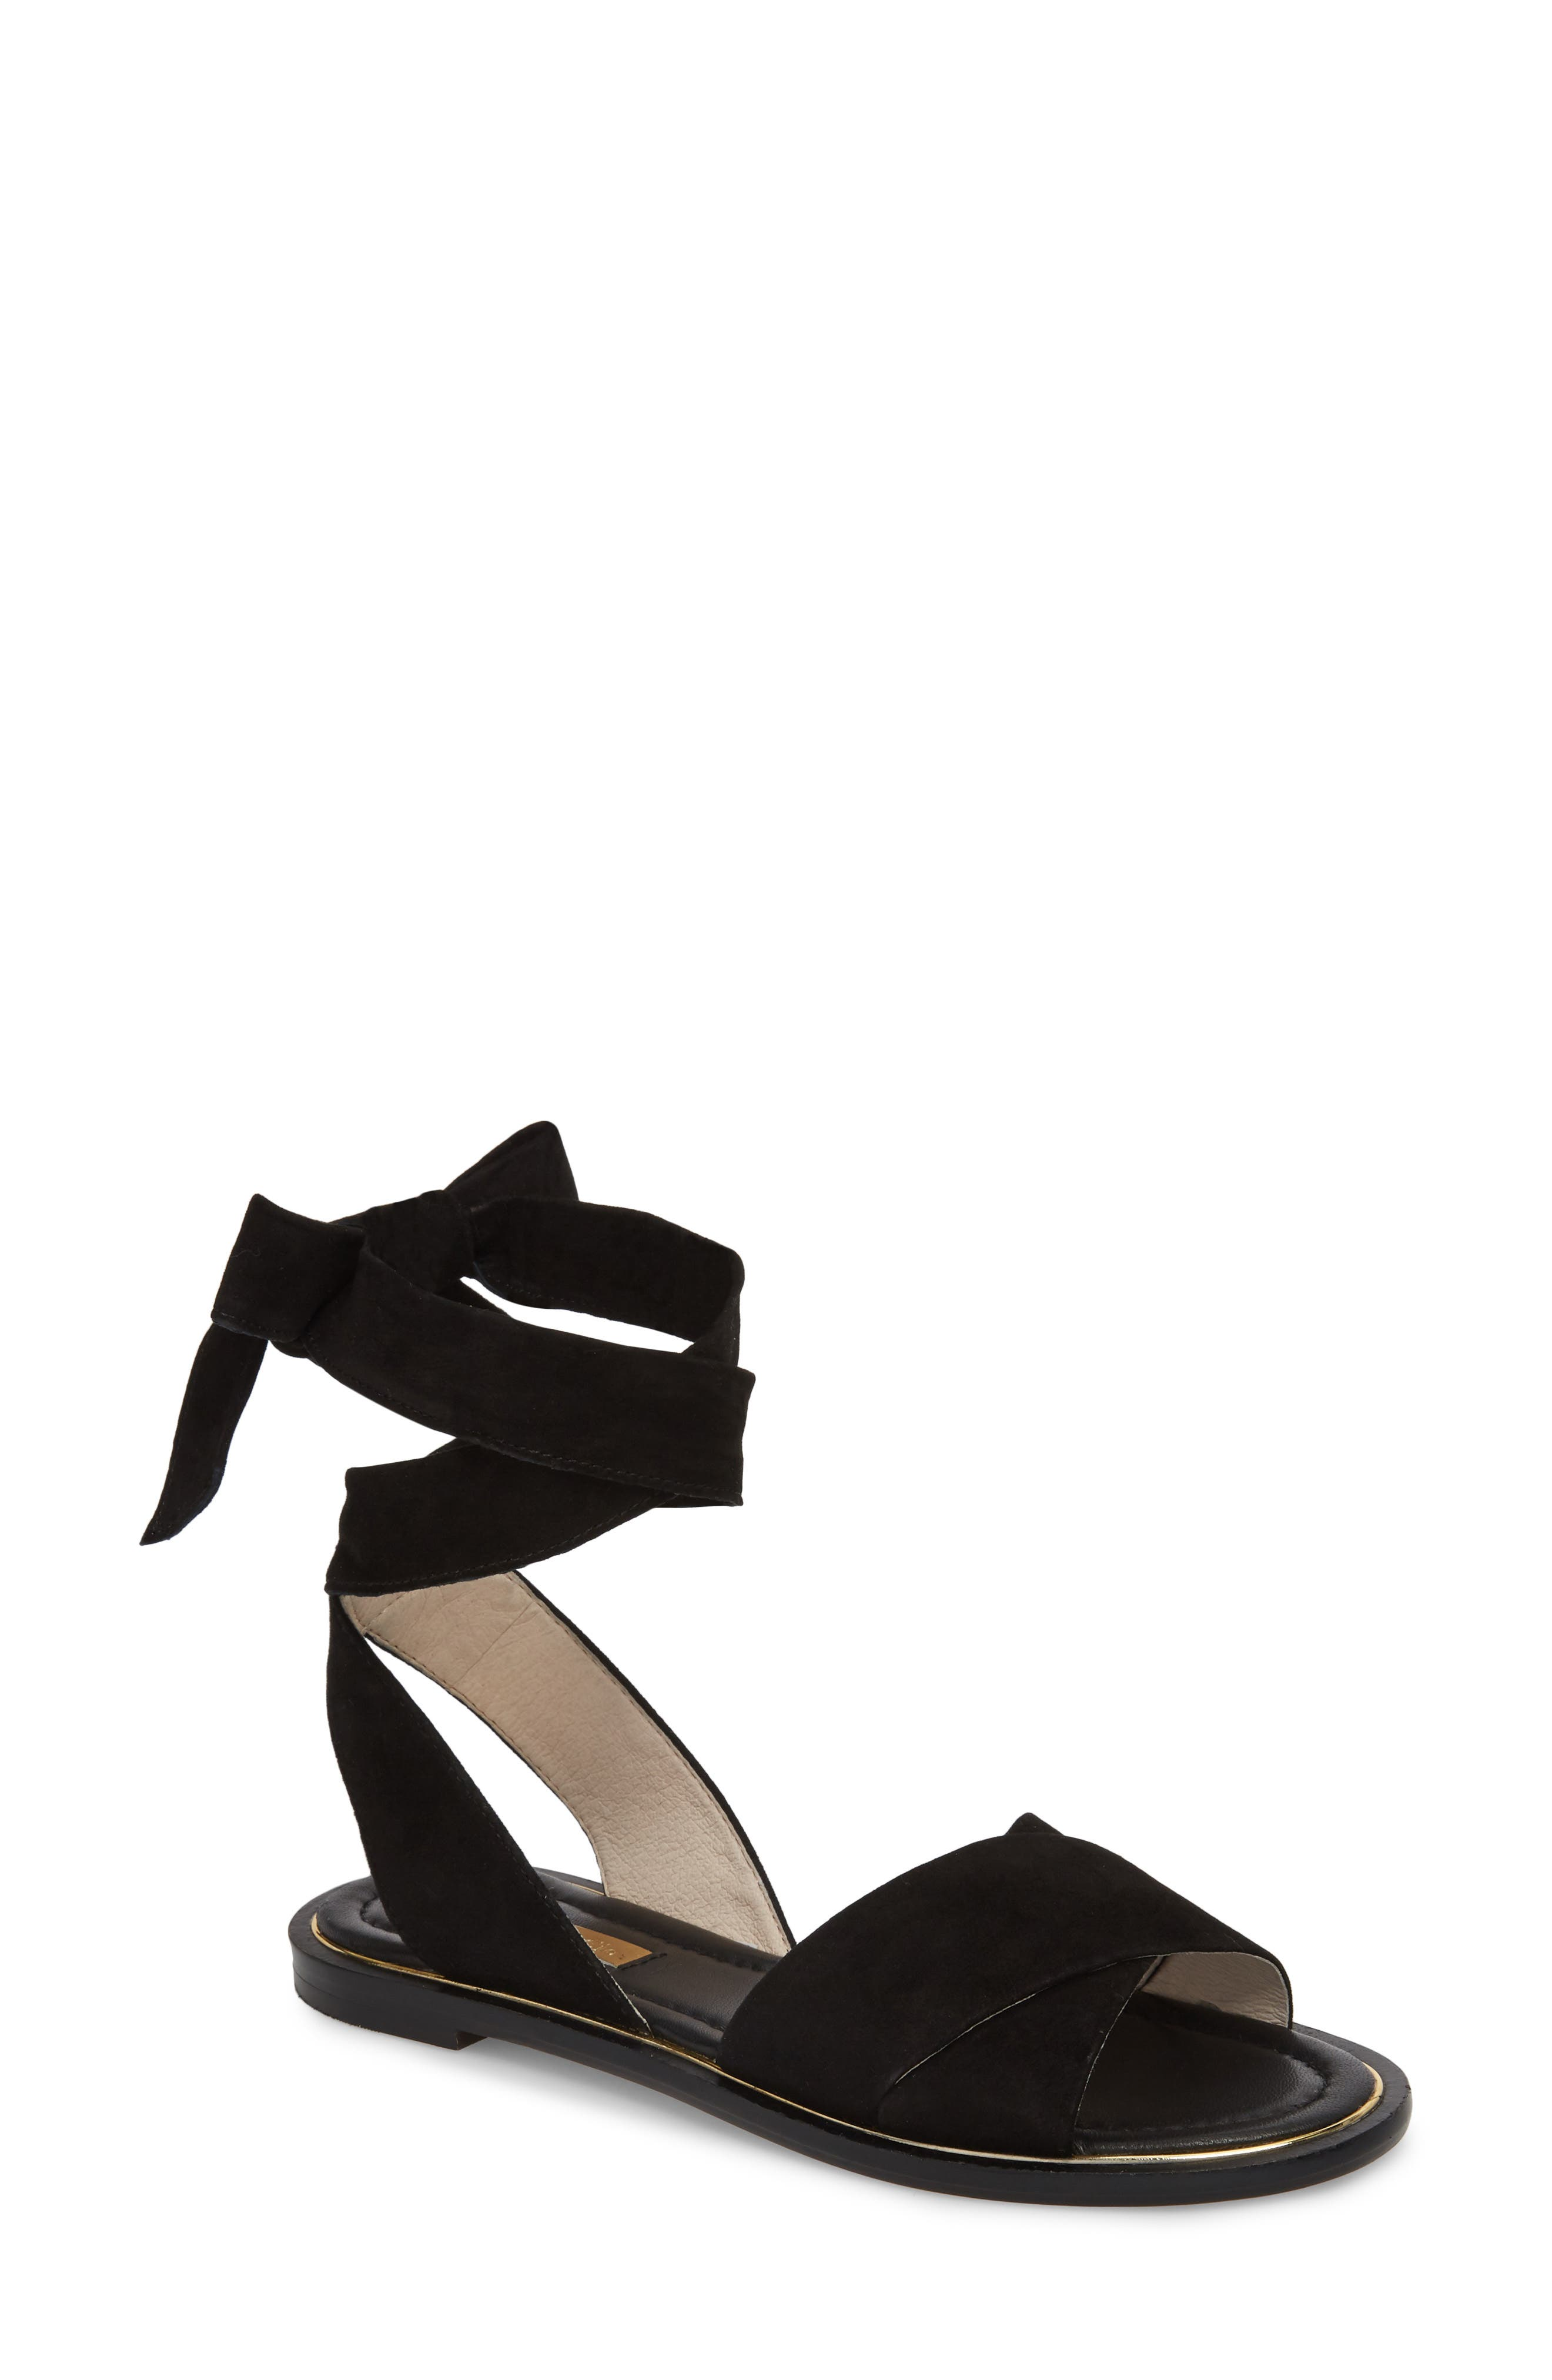 Biglia Ankle Wrap Sandal, Main, color, 001